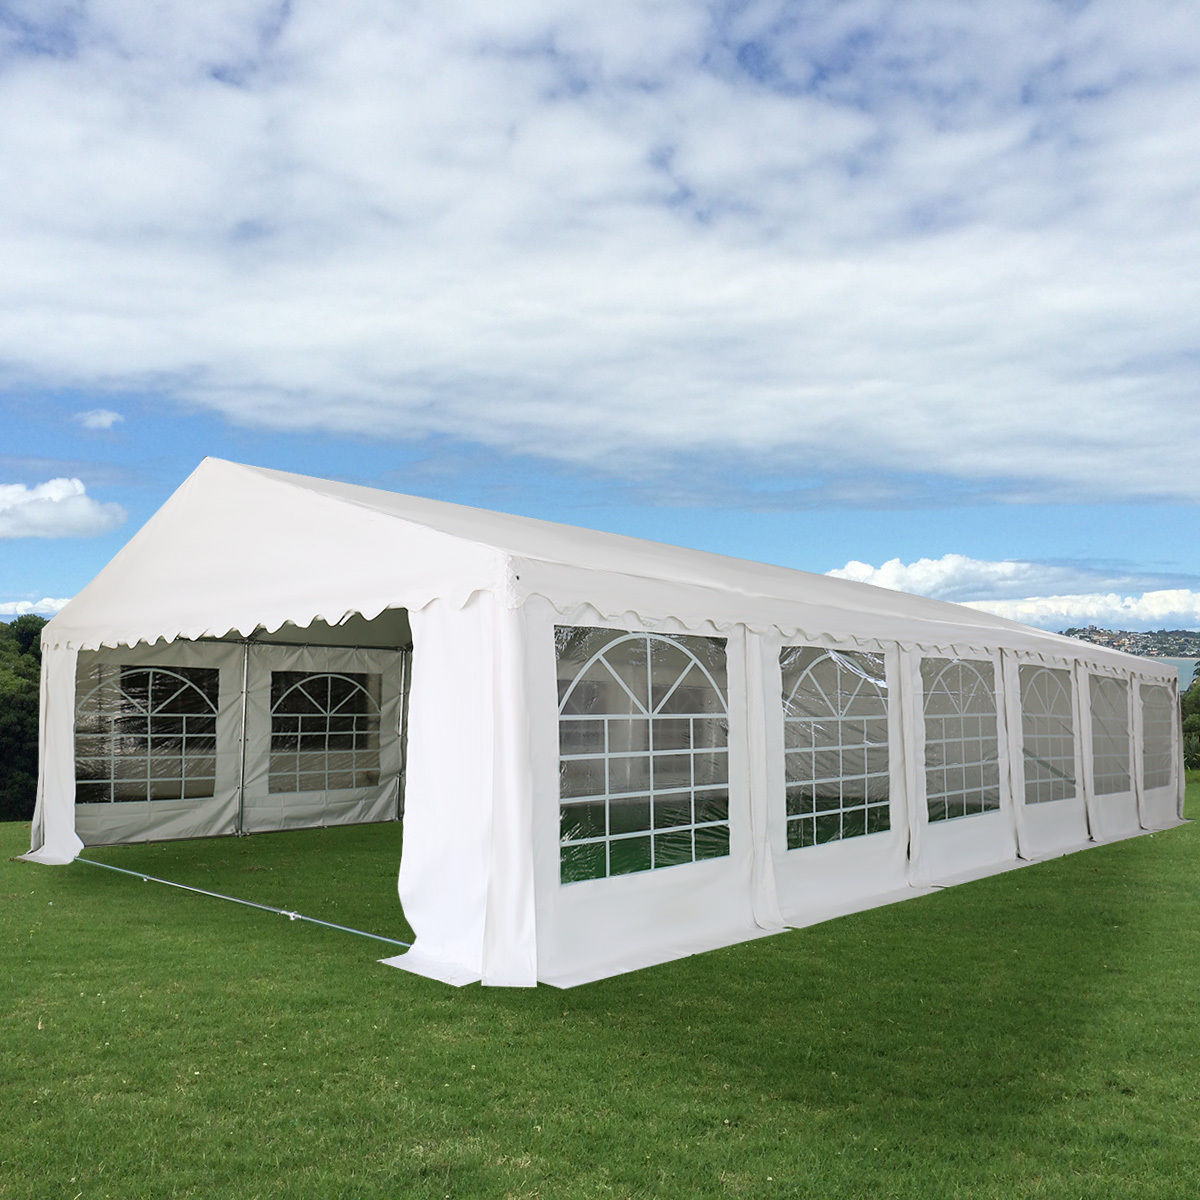 Costway 20'X40' Wedding Tent Shelter Heavy Duty Outdoor Party Canopy Carport White by Costway